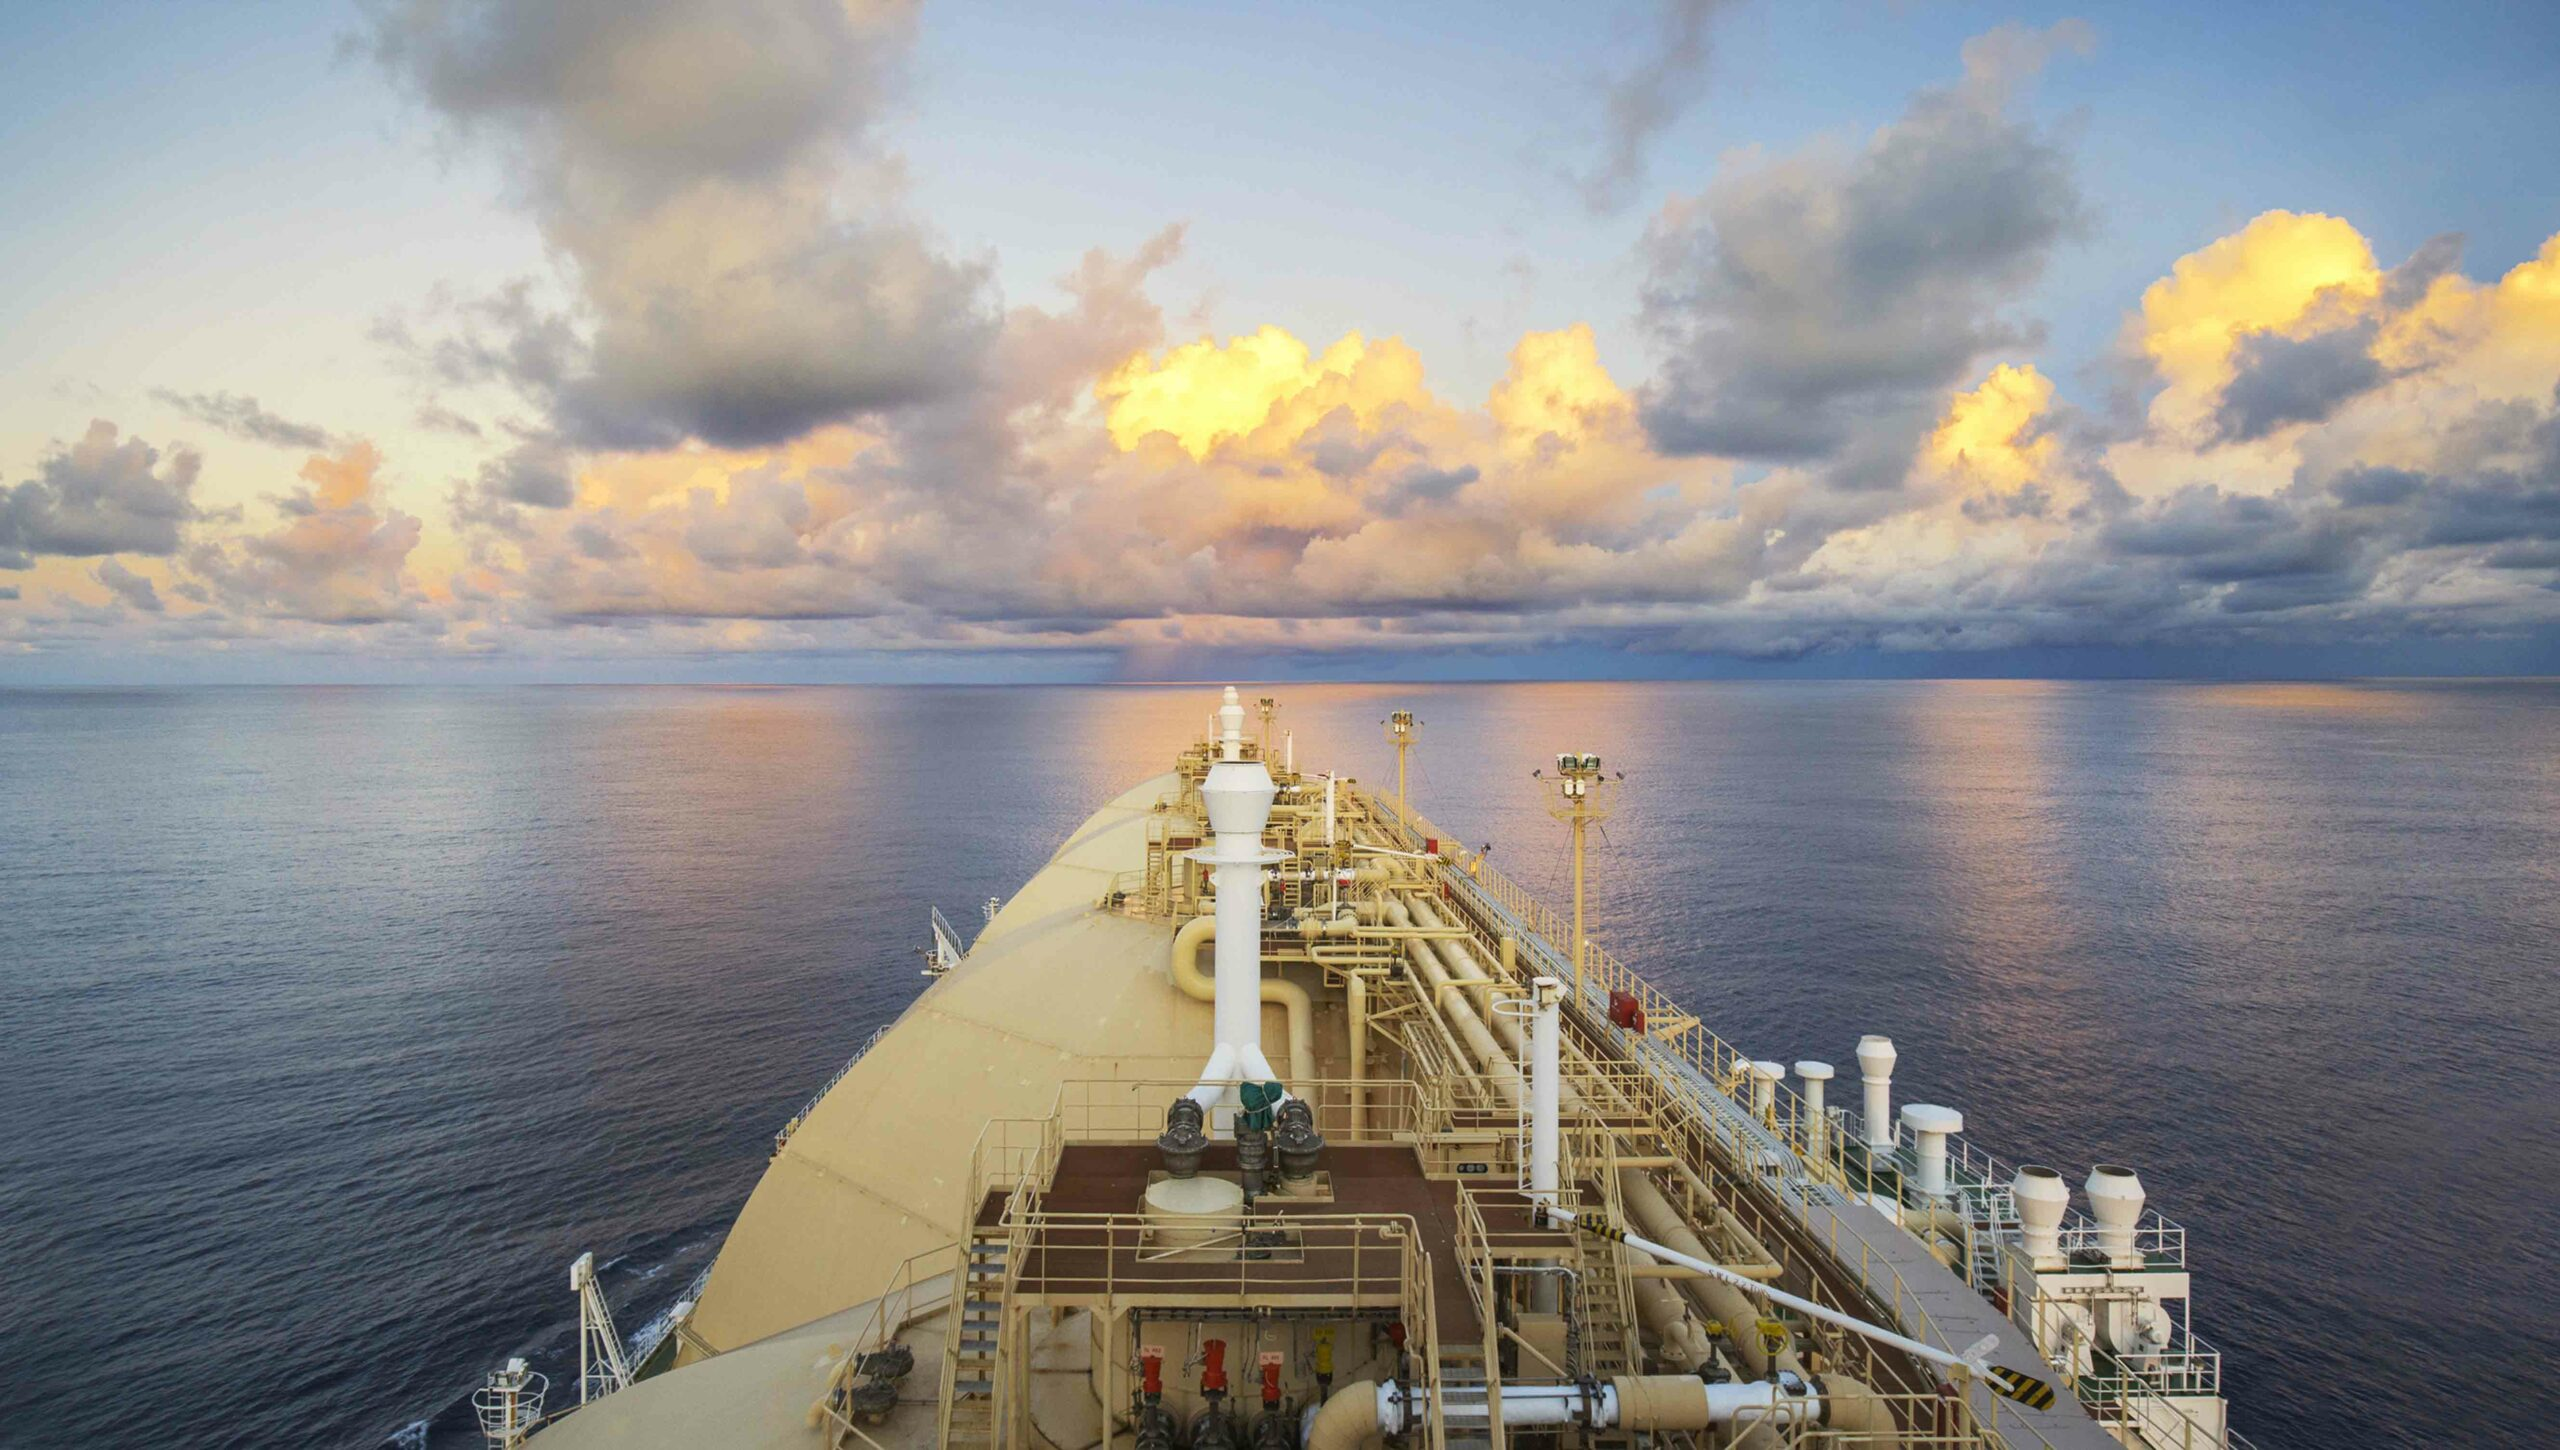 LNG ships are getting popular Atlas Logistic NEtwork